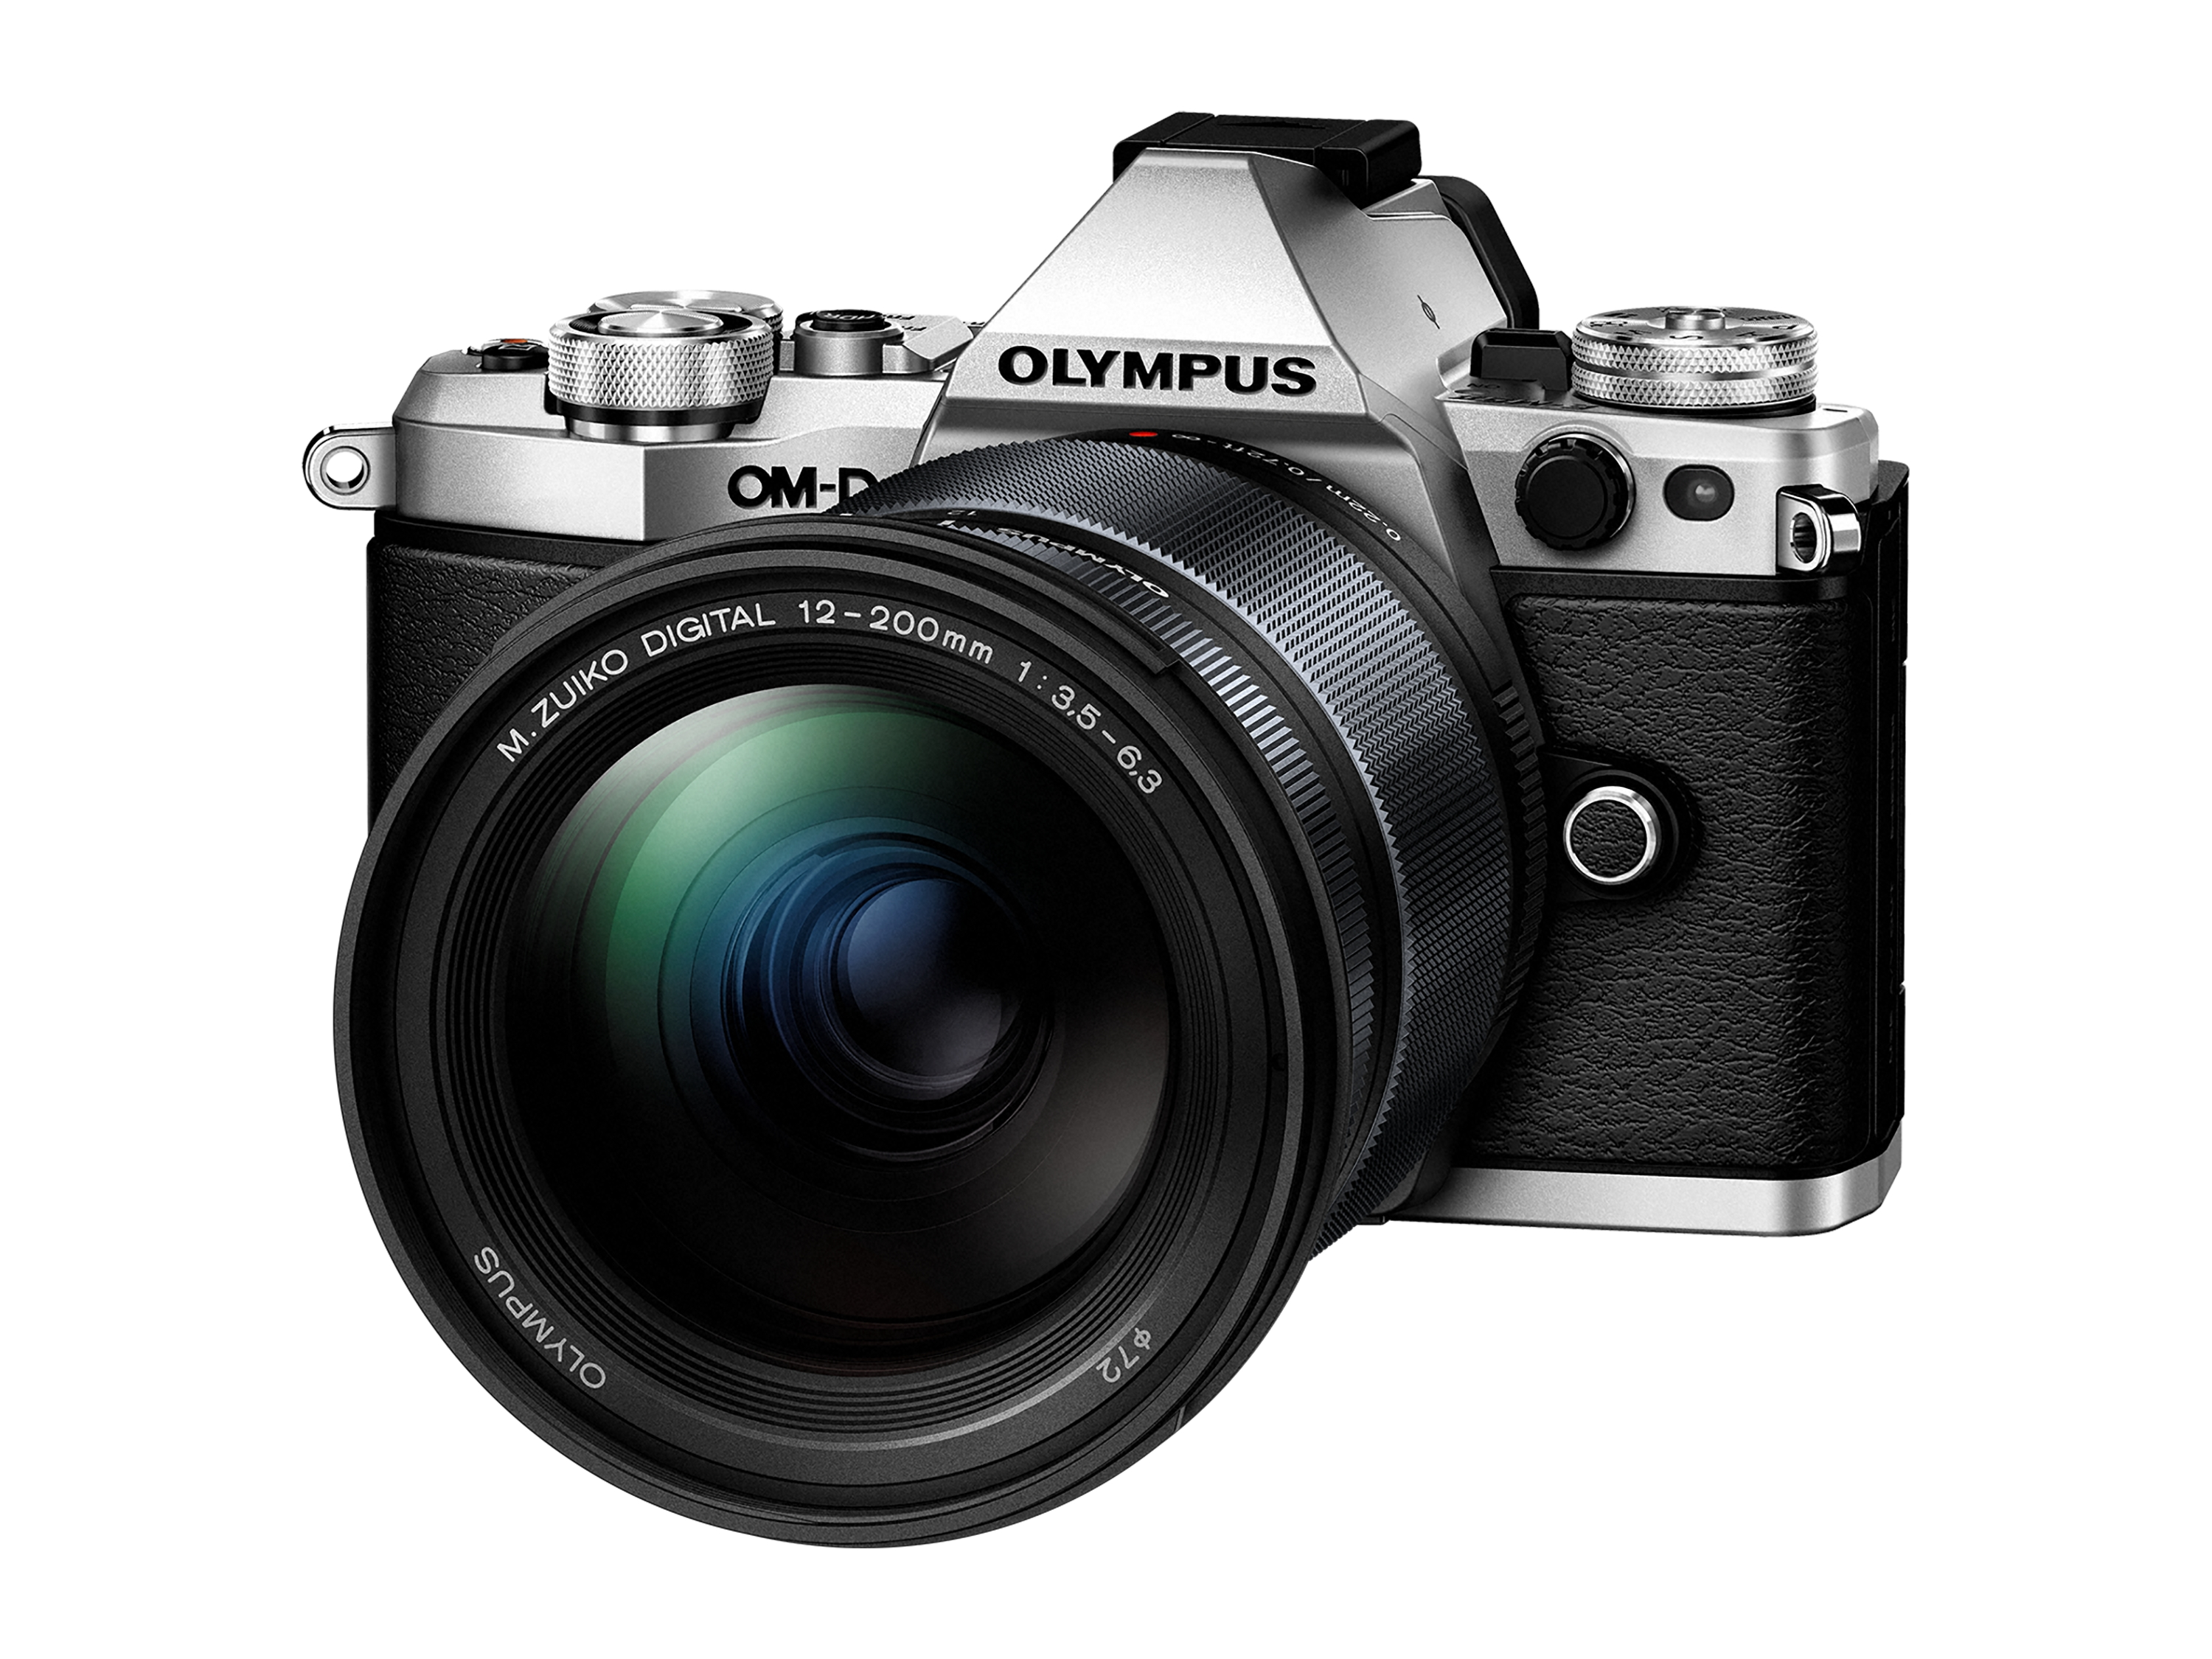 Olympus OM-D E-M10 Mark III with 12-200mm F3.5-6.3 M.Zuiko Lens Kit - Silver